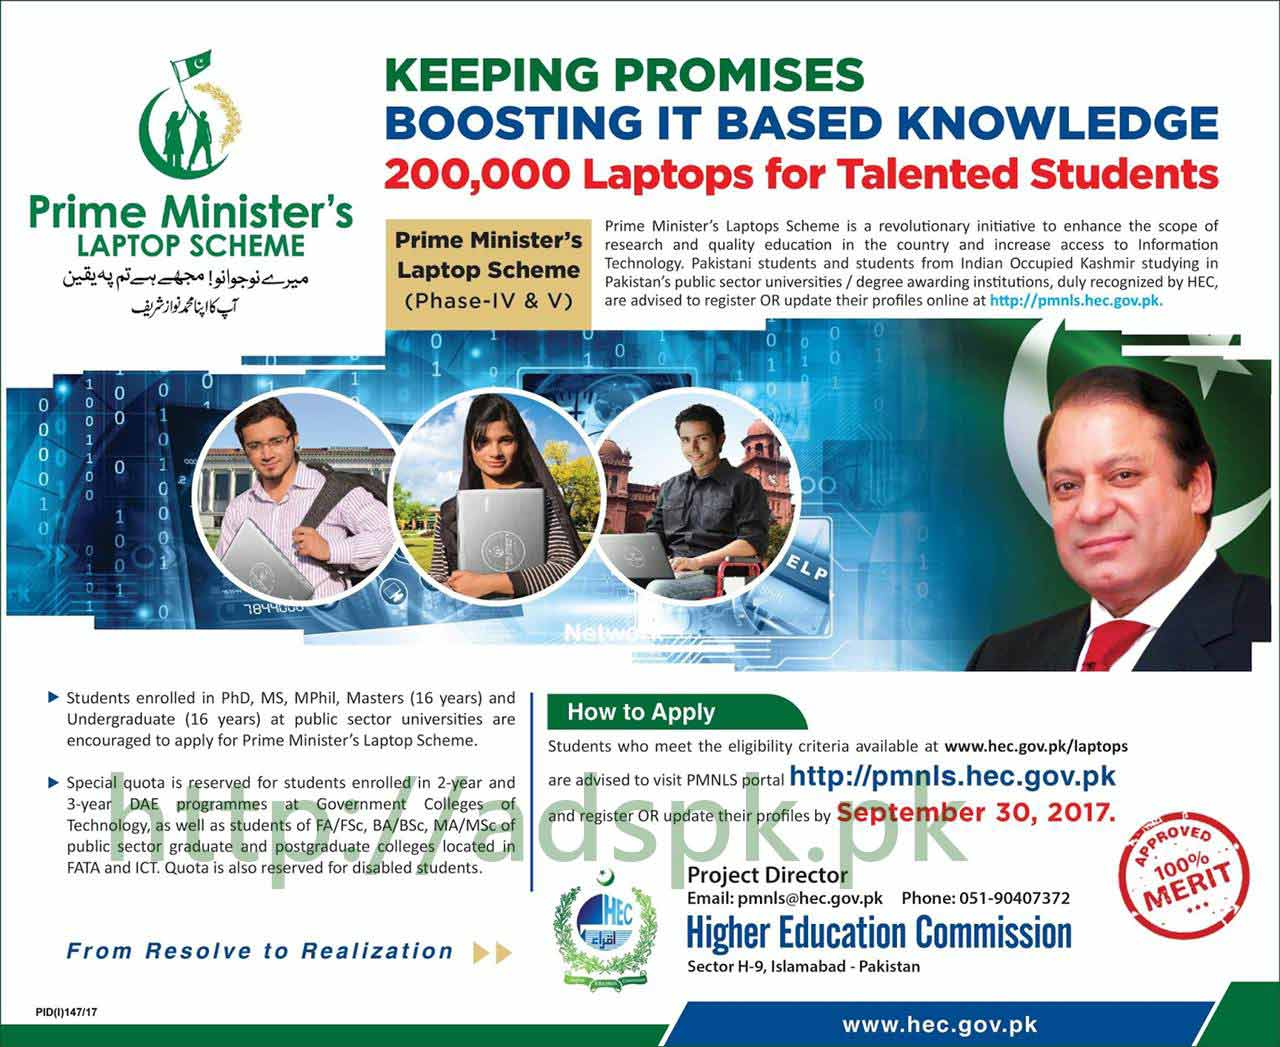 PM Prime Minister's Laptop Scheme Phase-IV & V 2017 Distribution 200000 Laptops for Talented Students F.A F.Sc B.A B.Sc M.A M.Sc MS M.Phil PhD Profiles Registration Deadline 30-09-2017 Apply Online Now by HEC